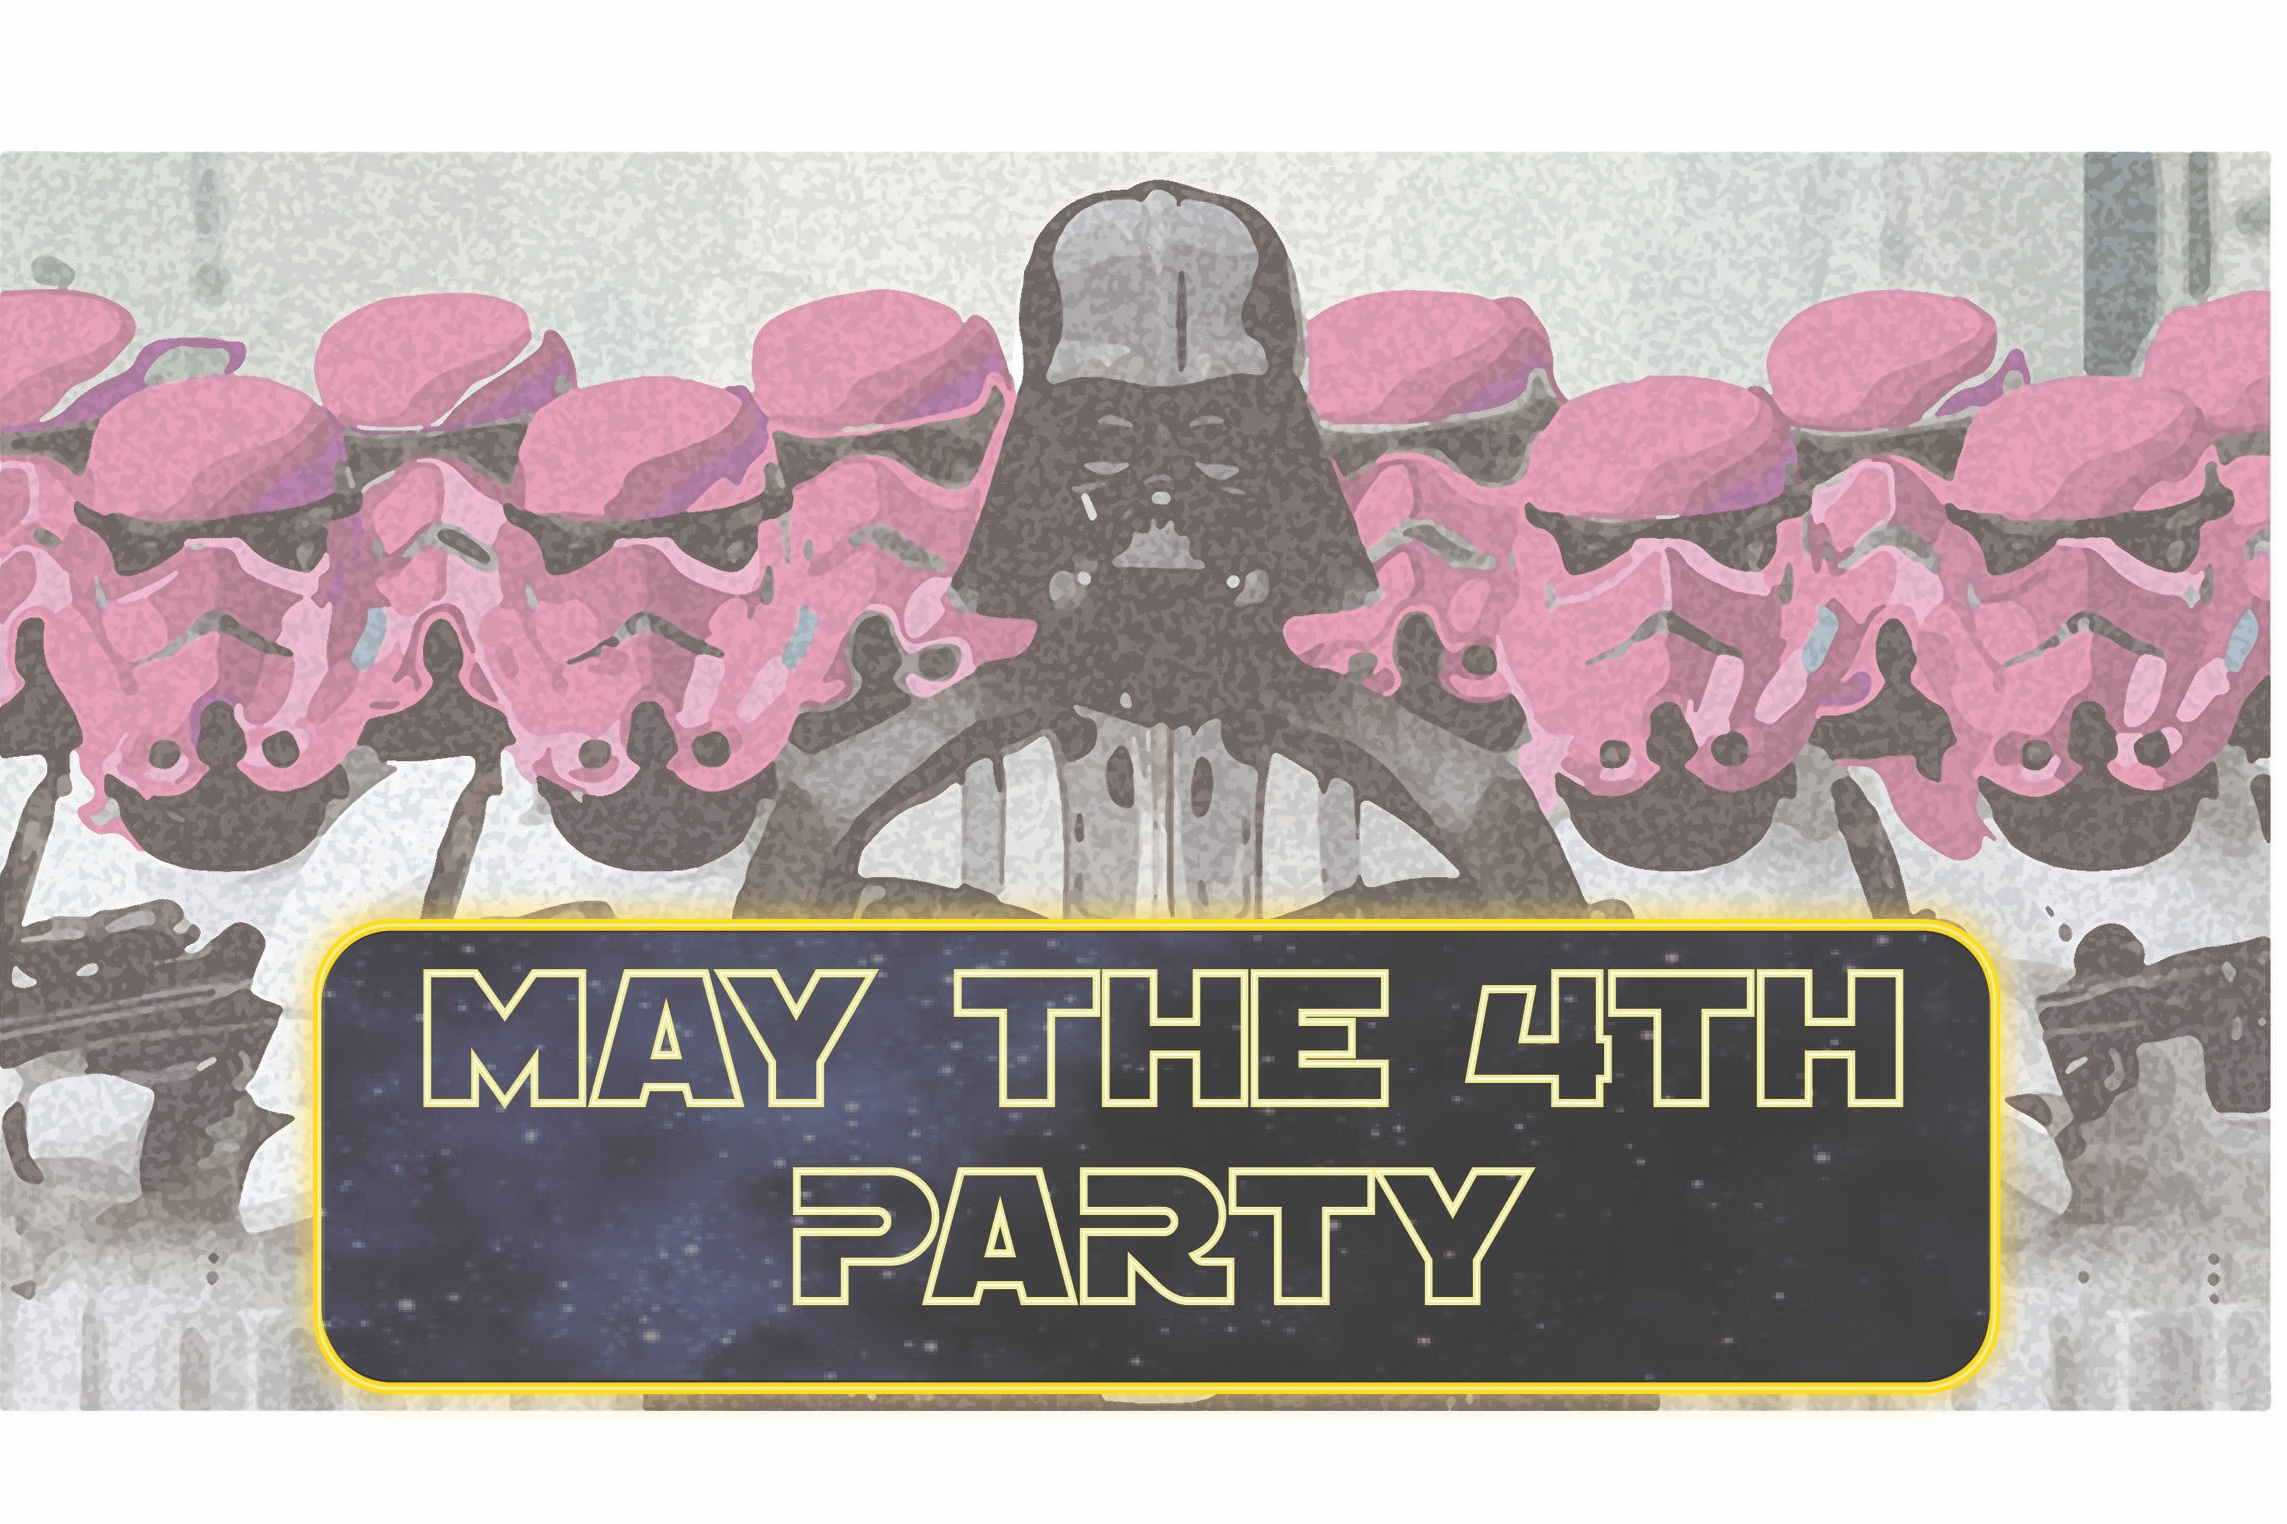 May+the+4th+party+design.jpg